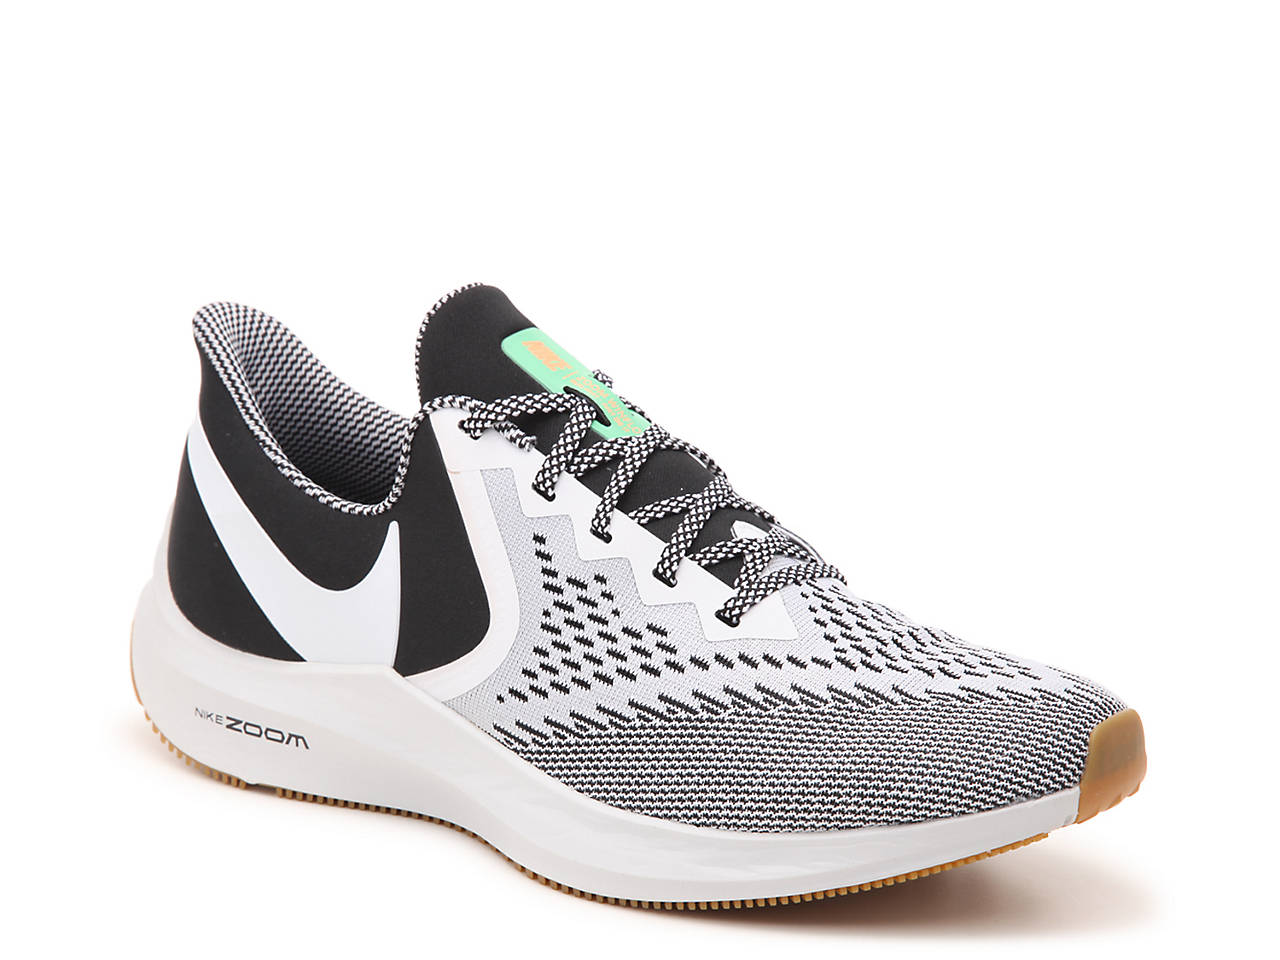 64767e9ea426b Nike Zoom Winflo 6 Lightweight Running Shoe - Men's Men's Shoes | DSW